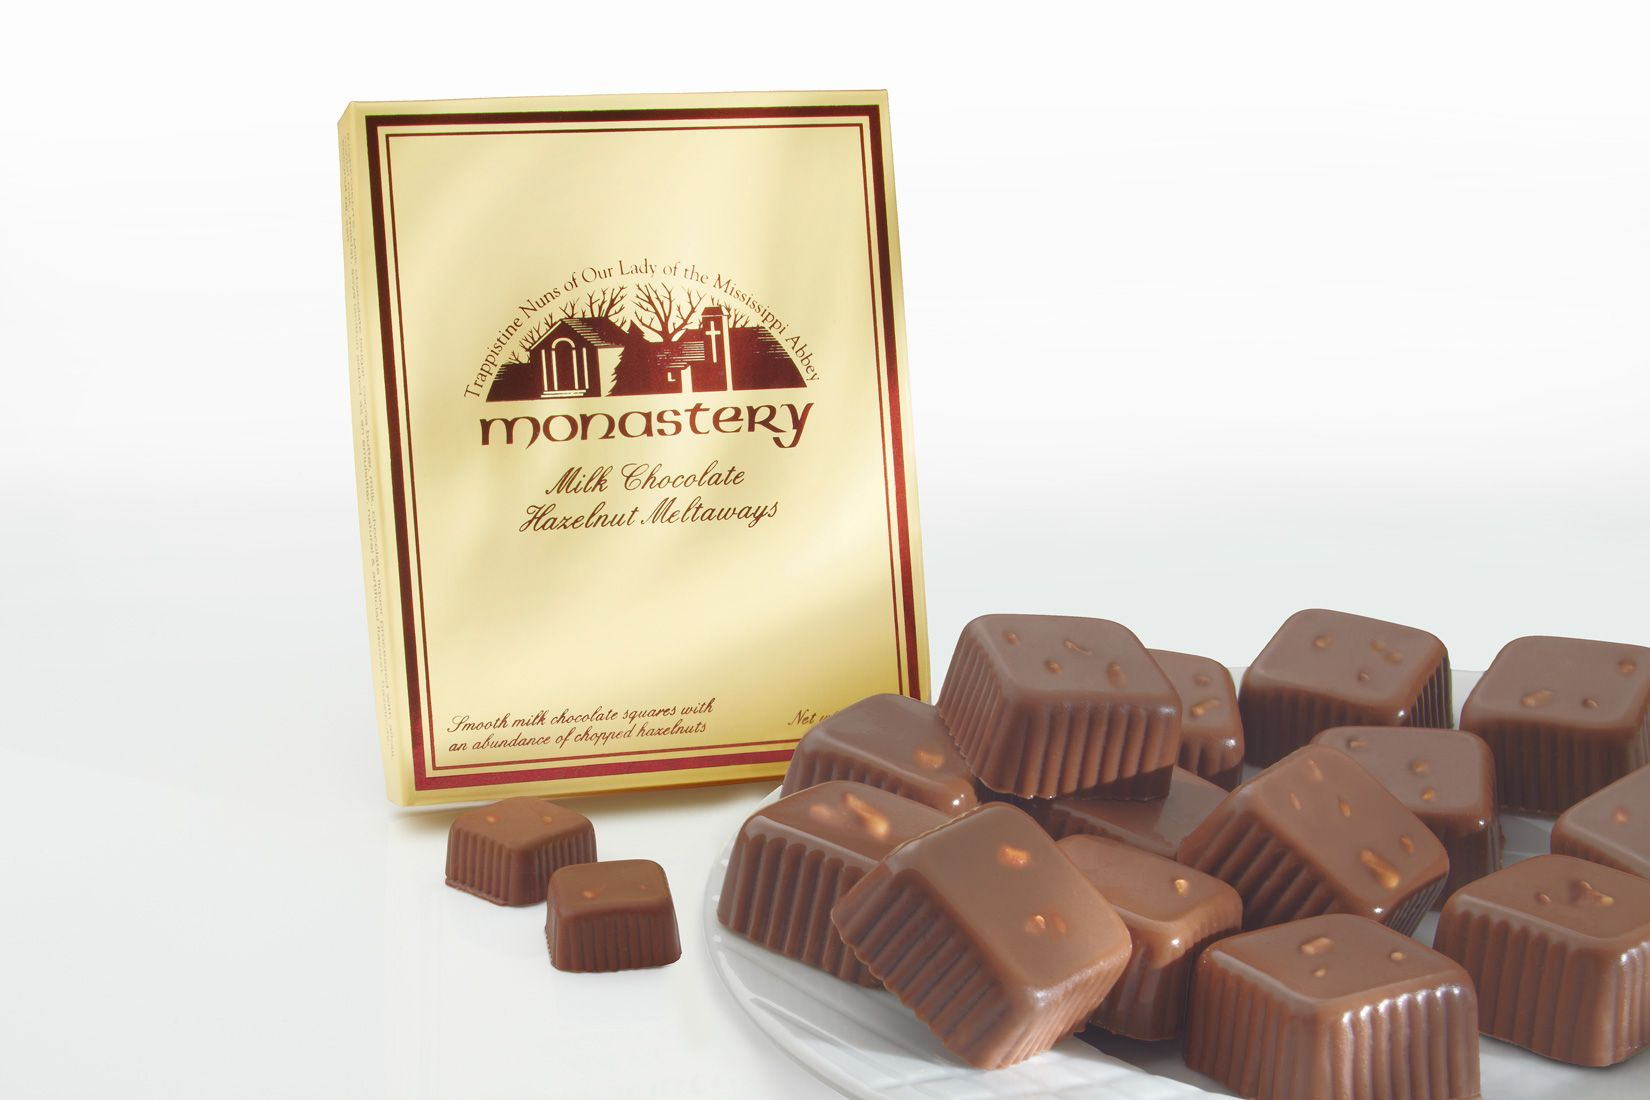 Monastery milk chocolate hazelnut meltaways food photography